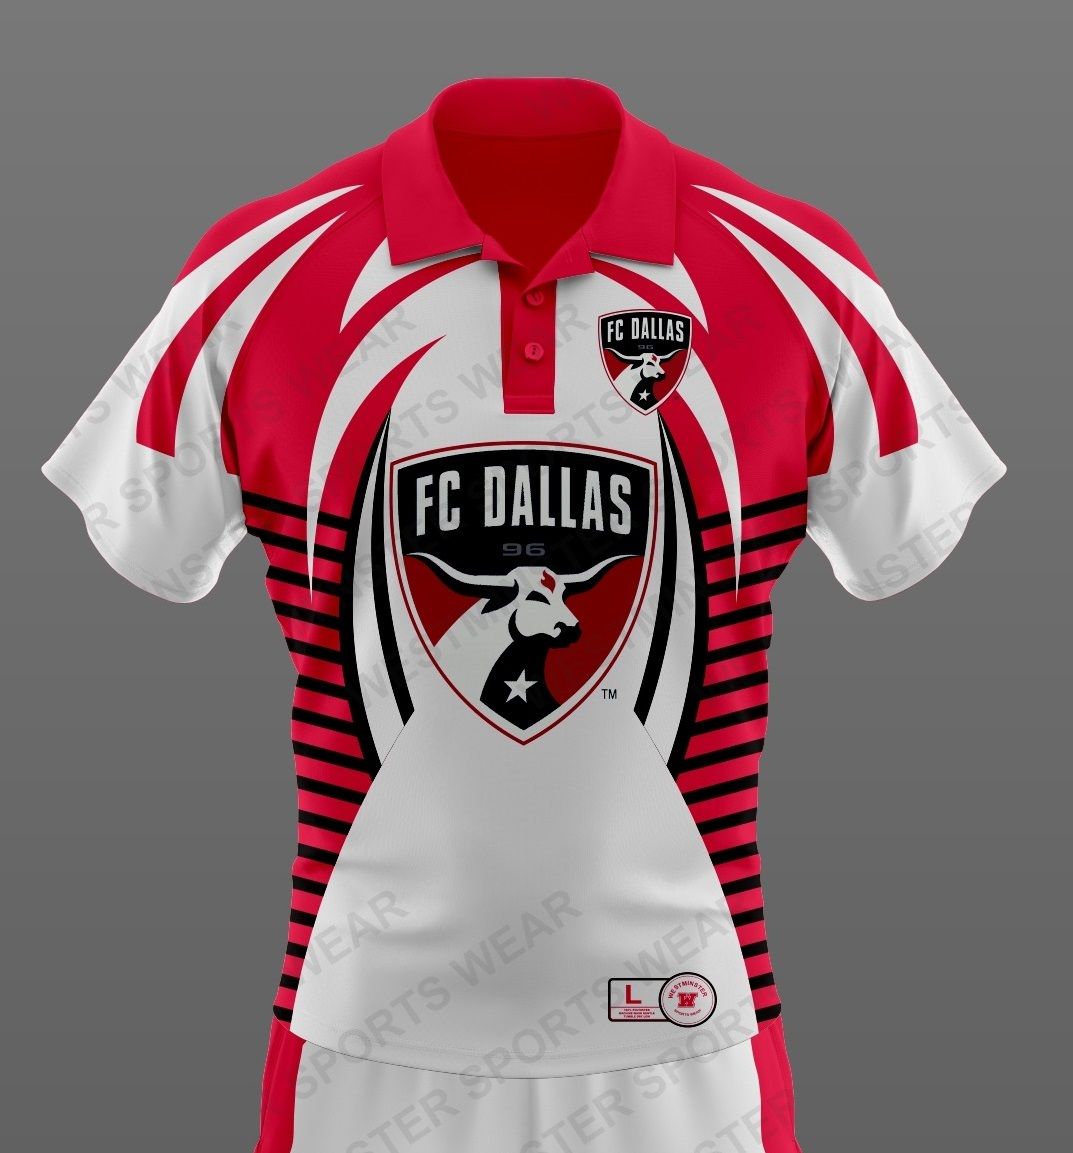 Großhandel billige kunden beste cricket getriebe cricket jersey designs team uniformen